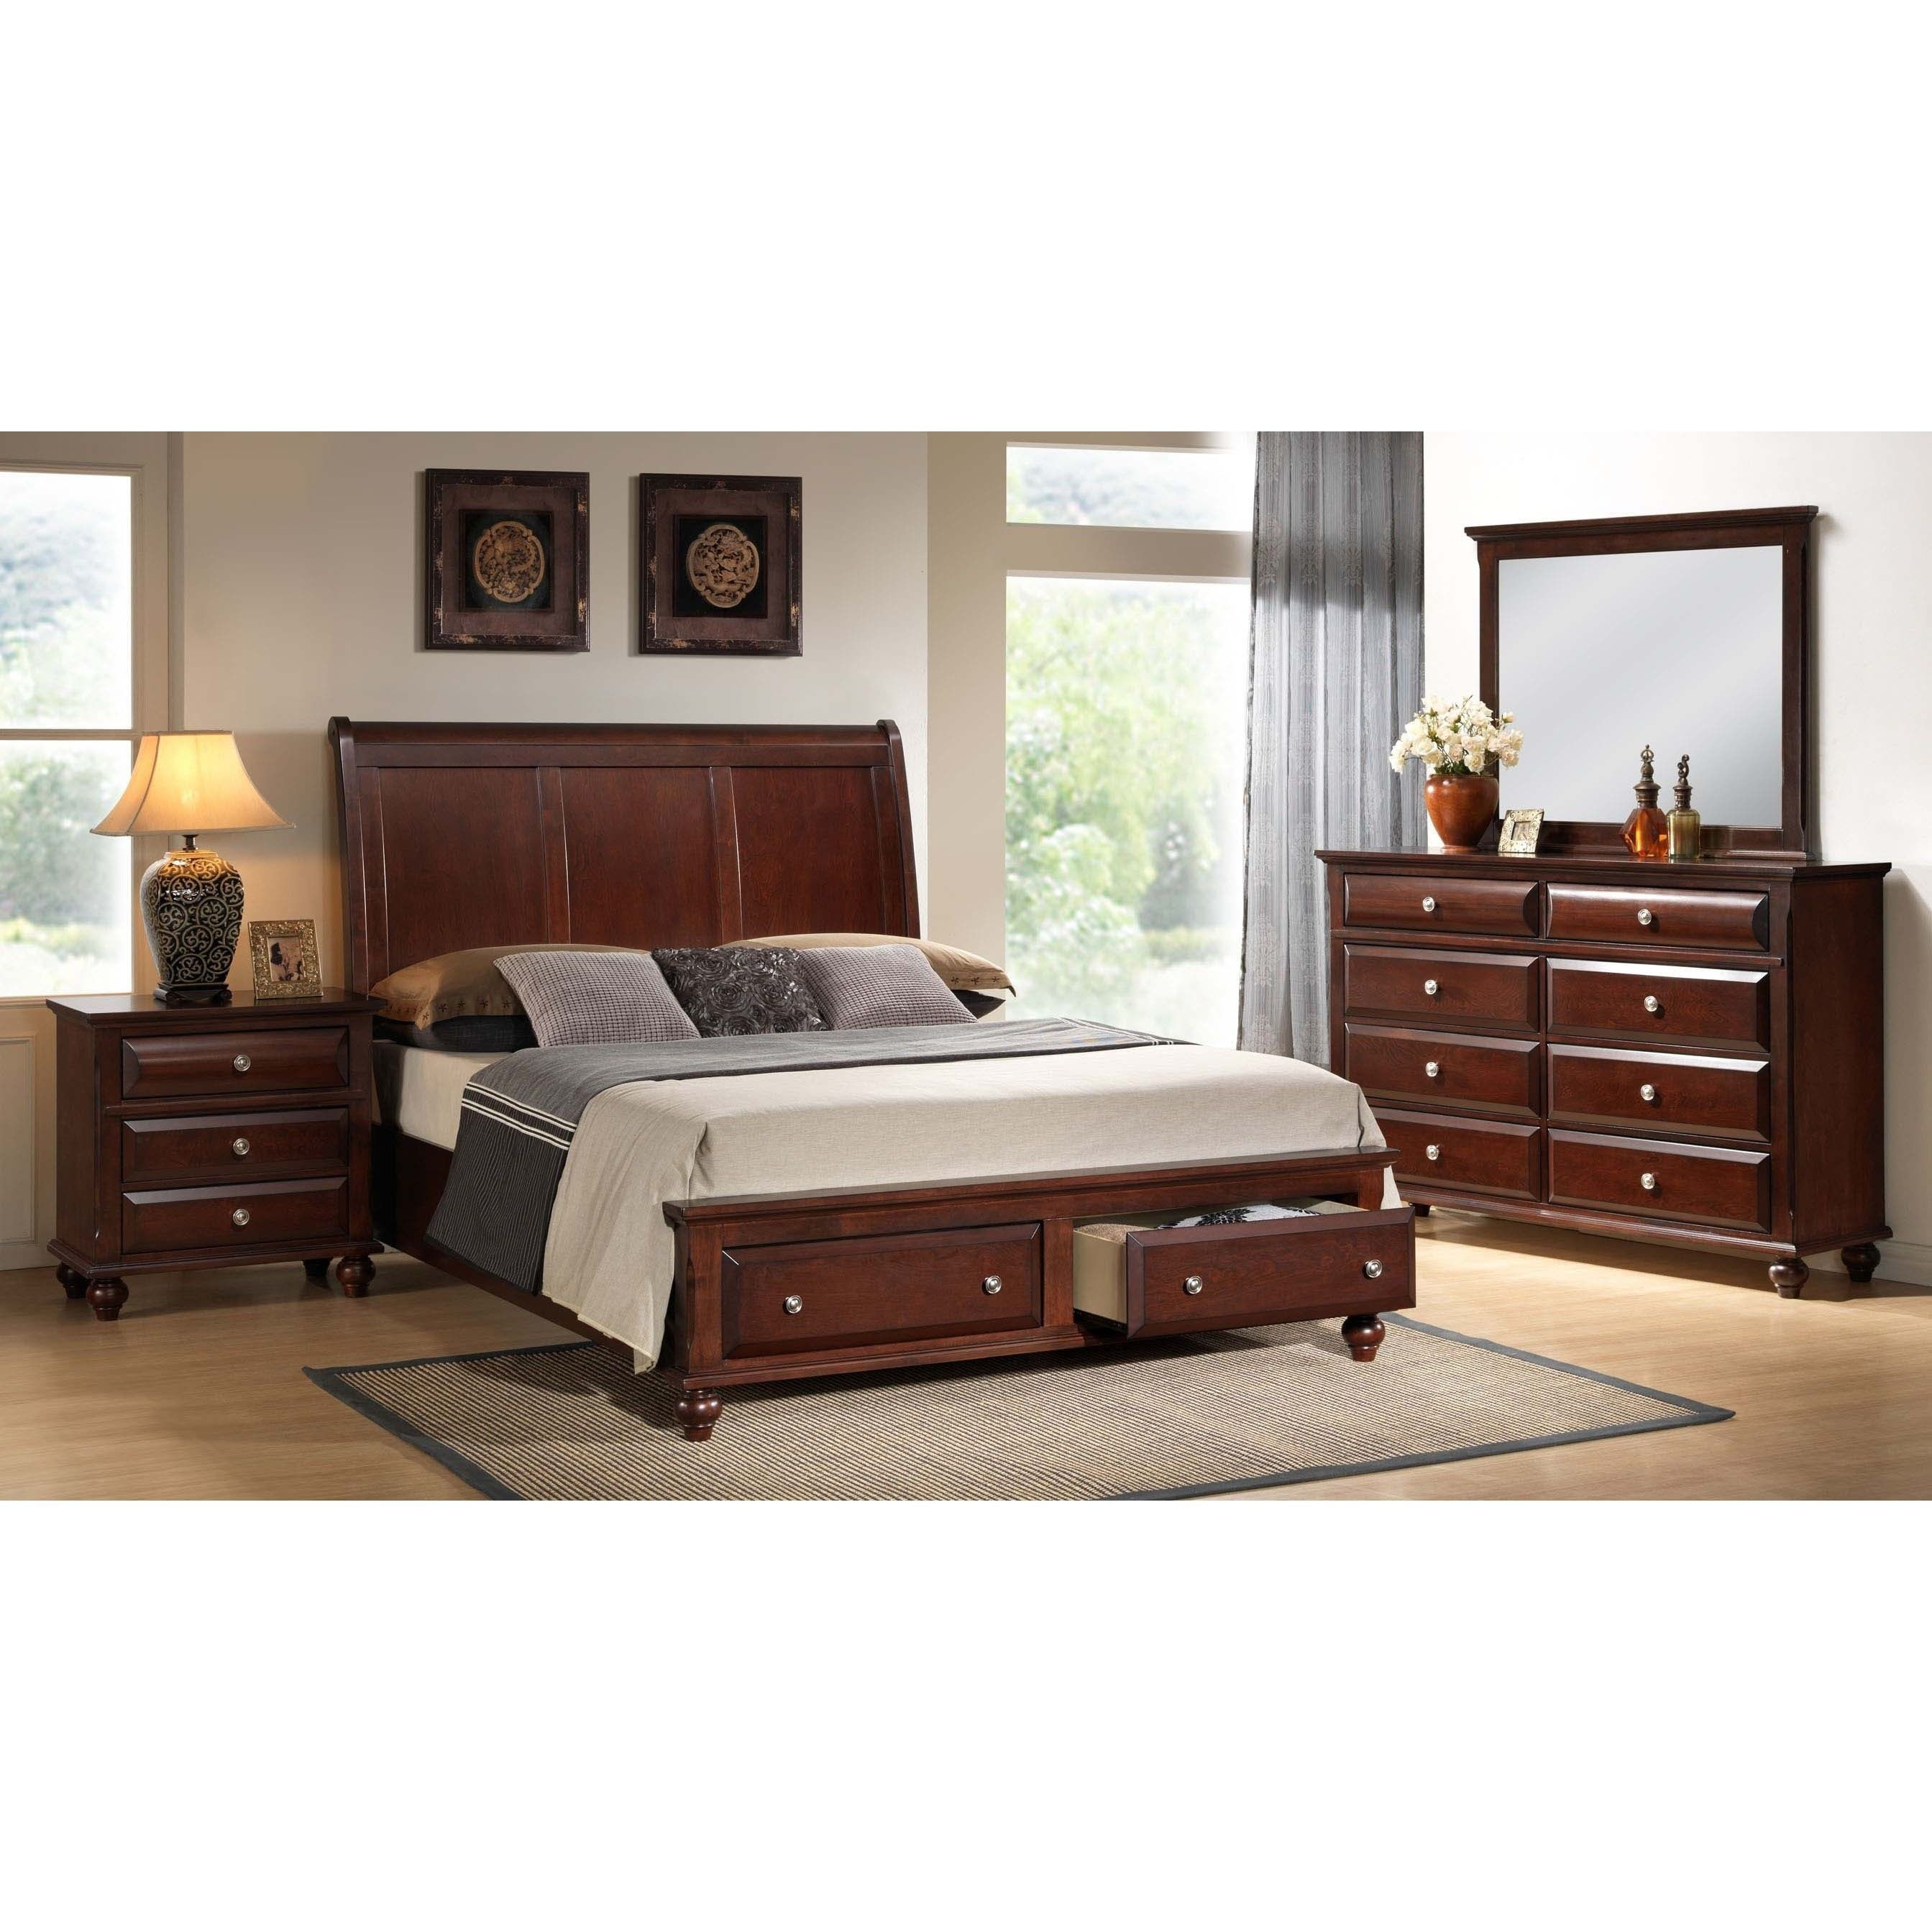 s queen hill universal size storage number bed item products hudson summer panel